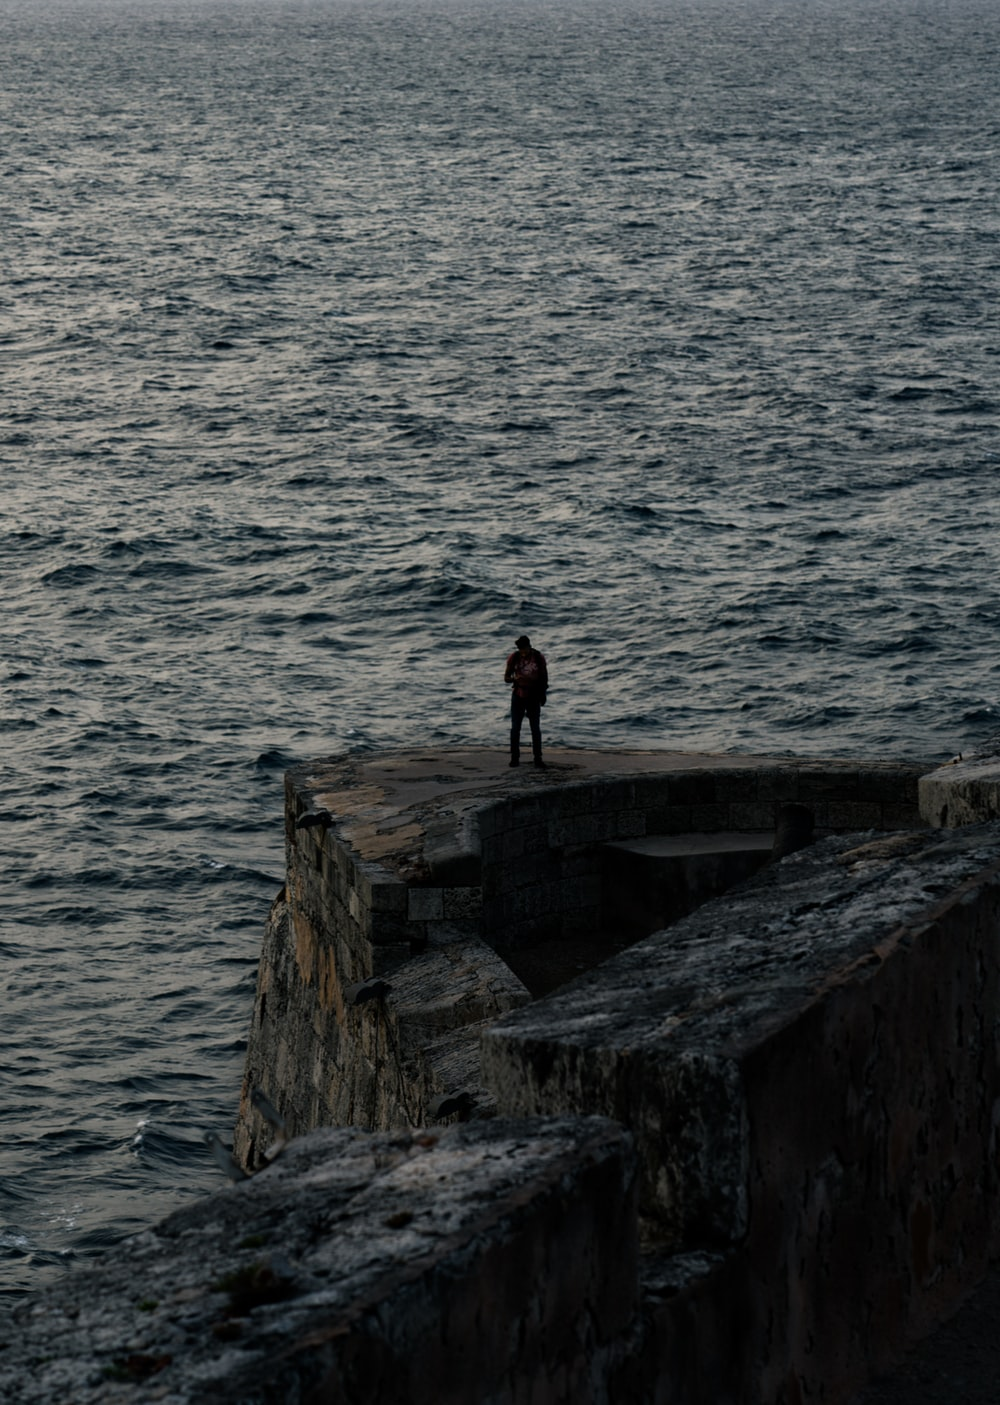 man standing on cliff near the bodies of water